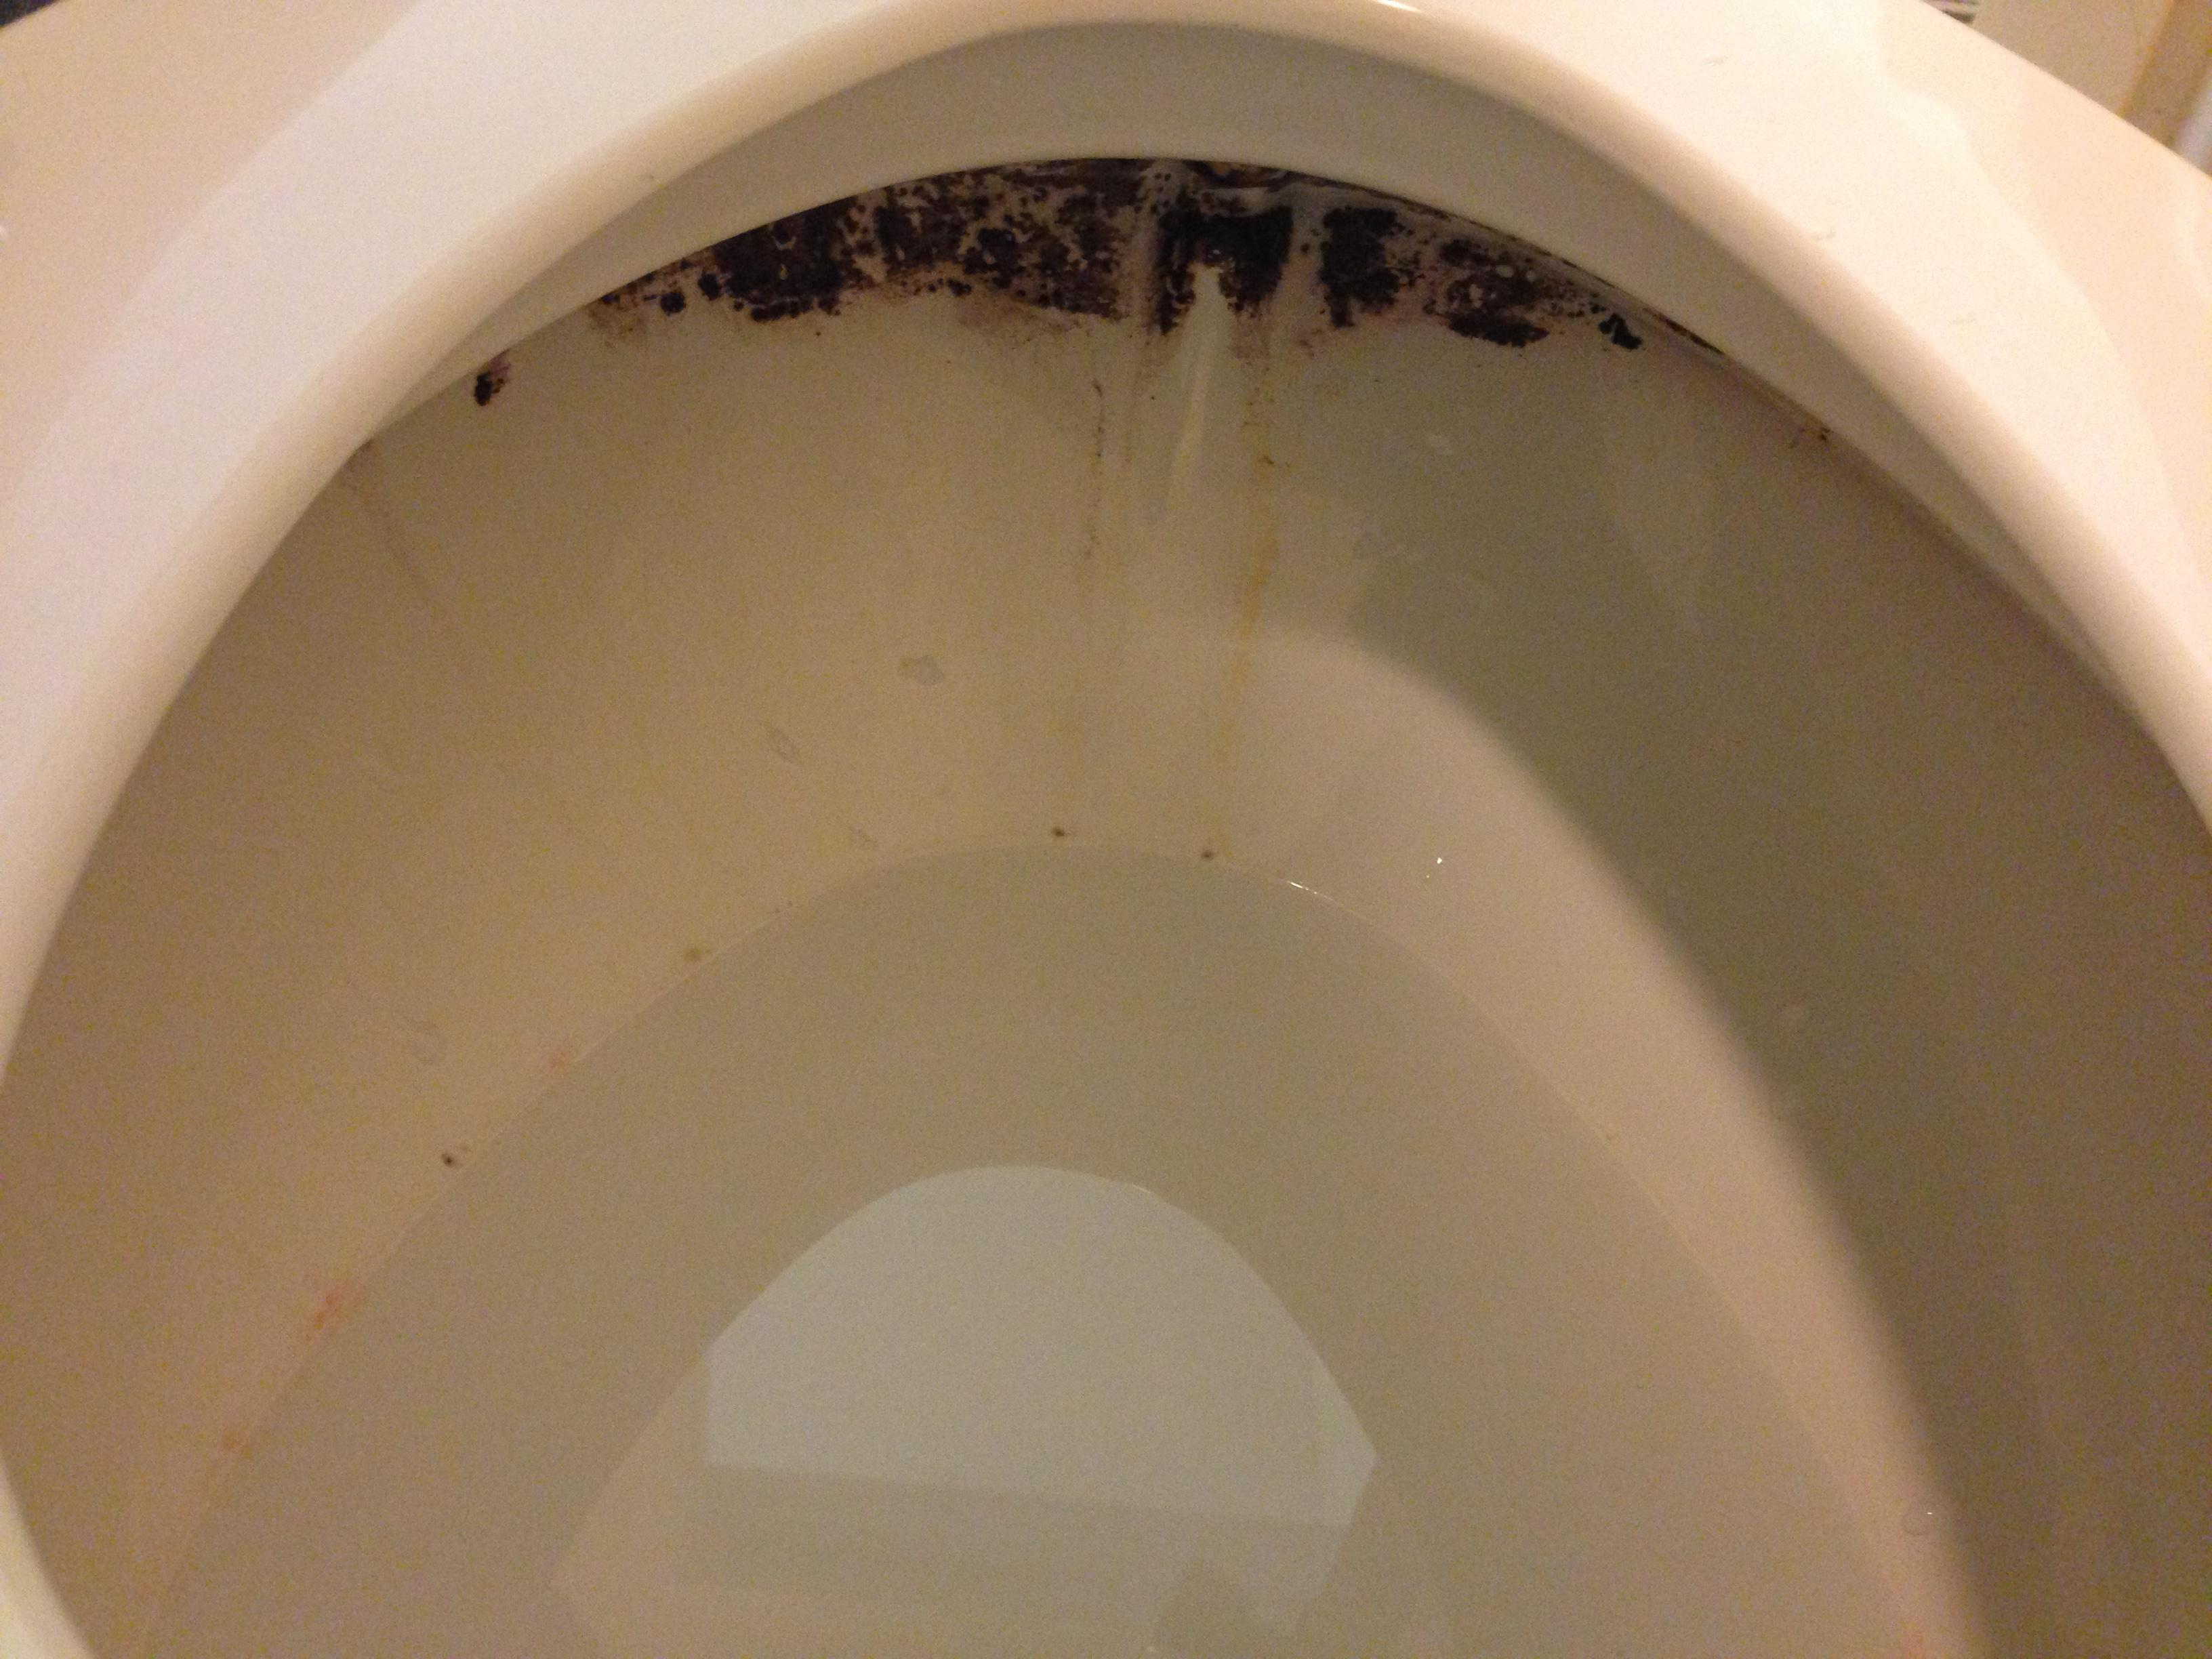 Toilet so dirty!!! Not sure what the cleaners or inspectors do !!